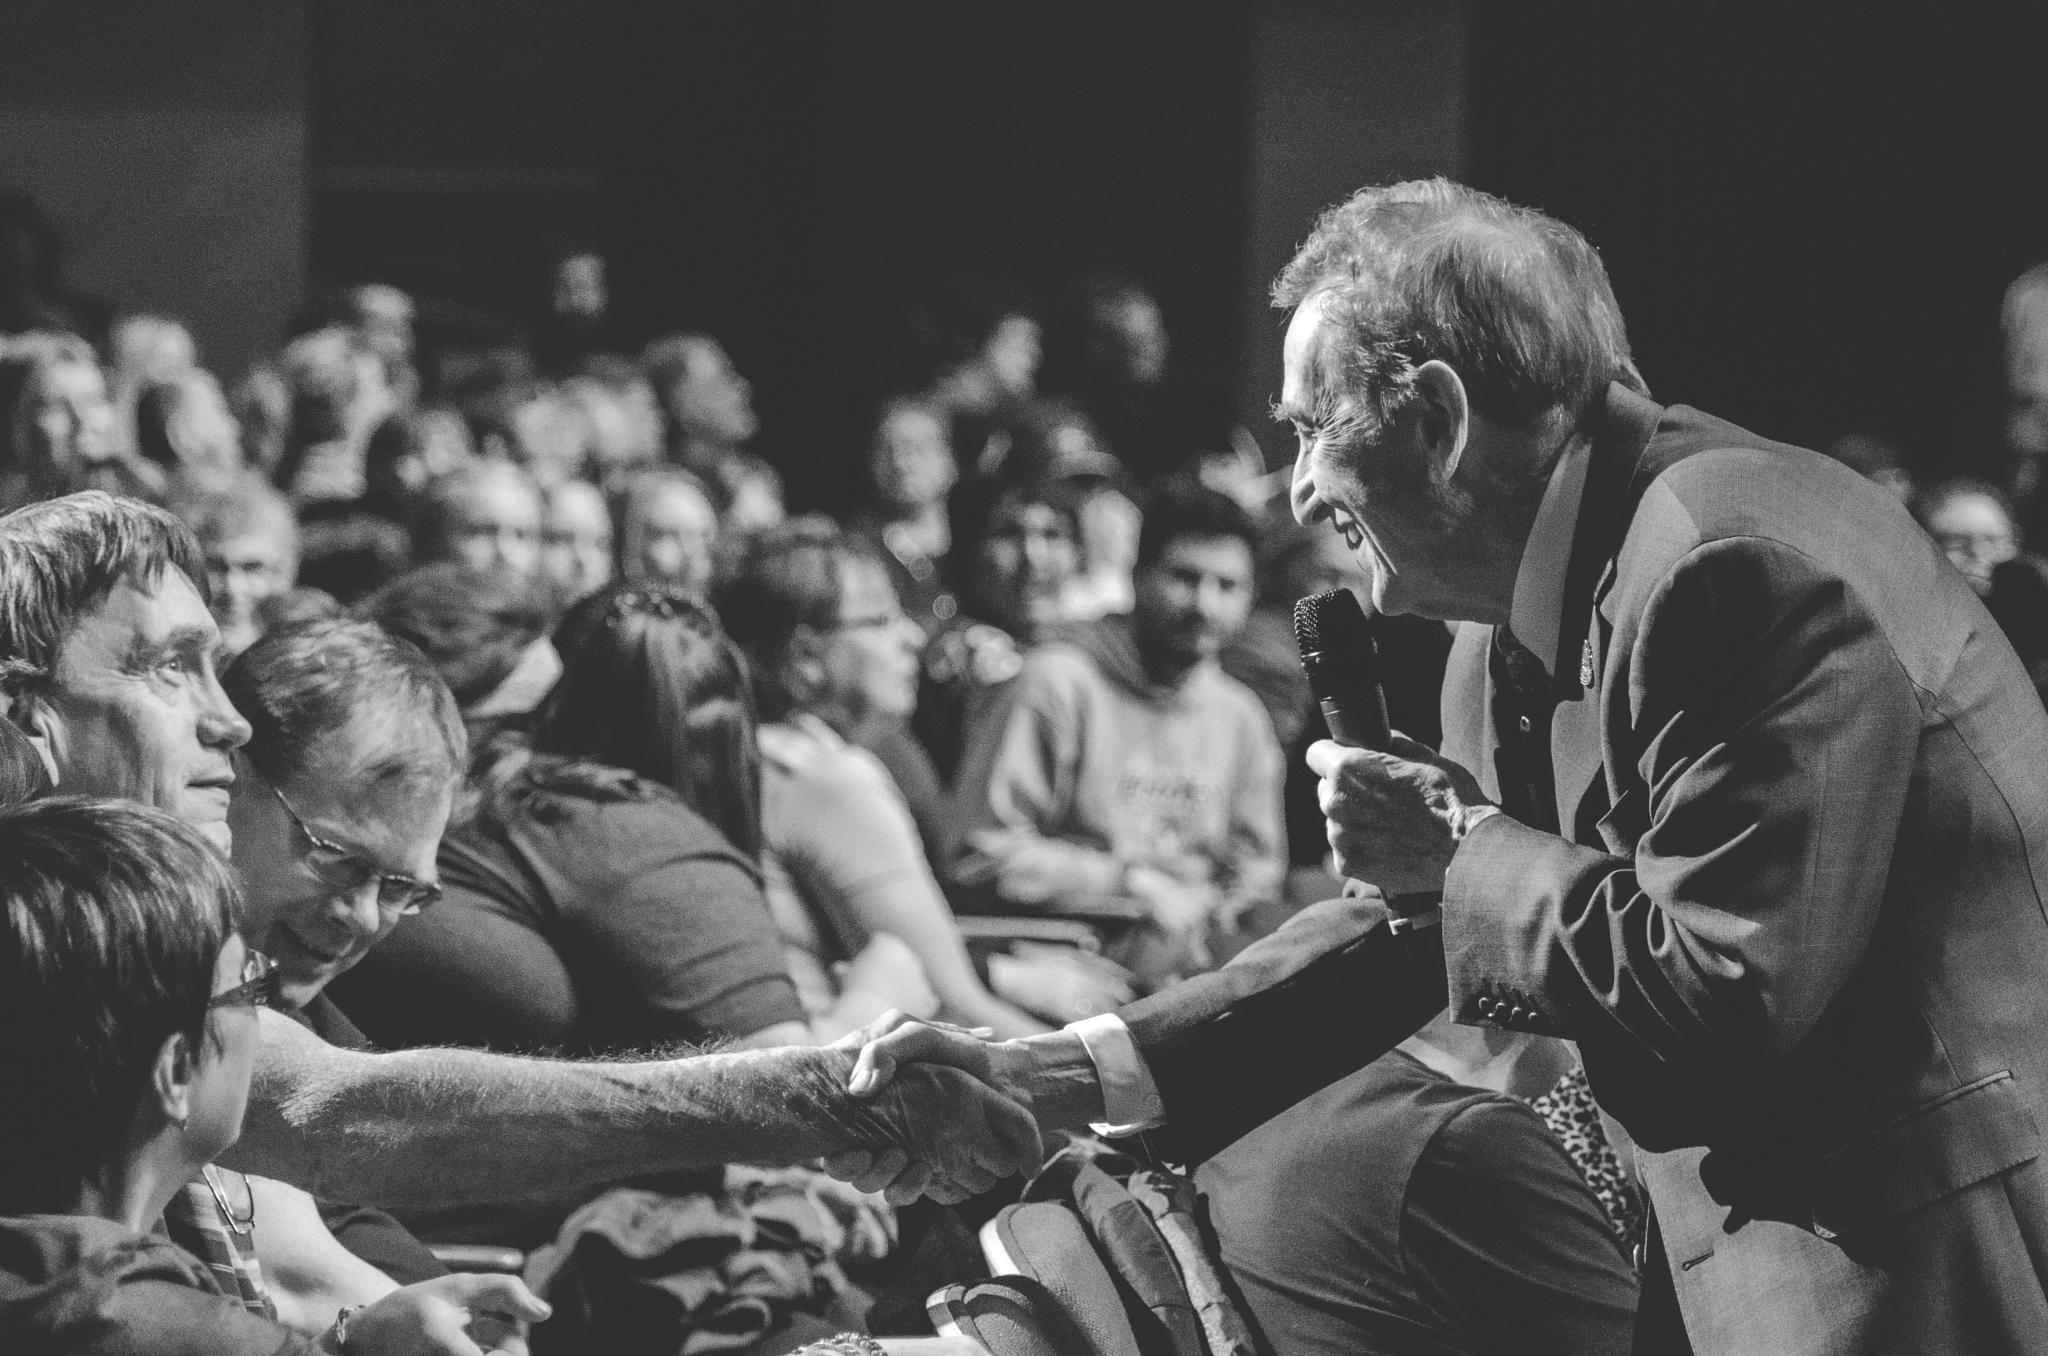 Bob McGrath-The Heart and Soul of Telemiracle by Ang Klassen